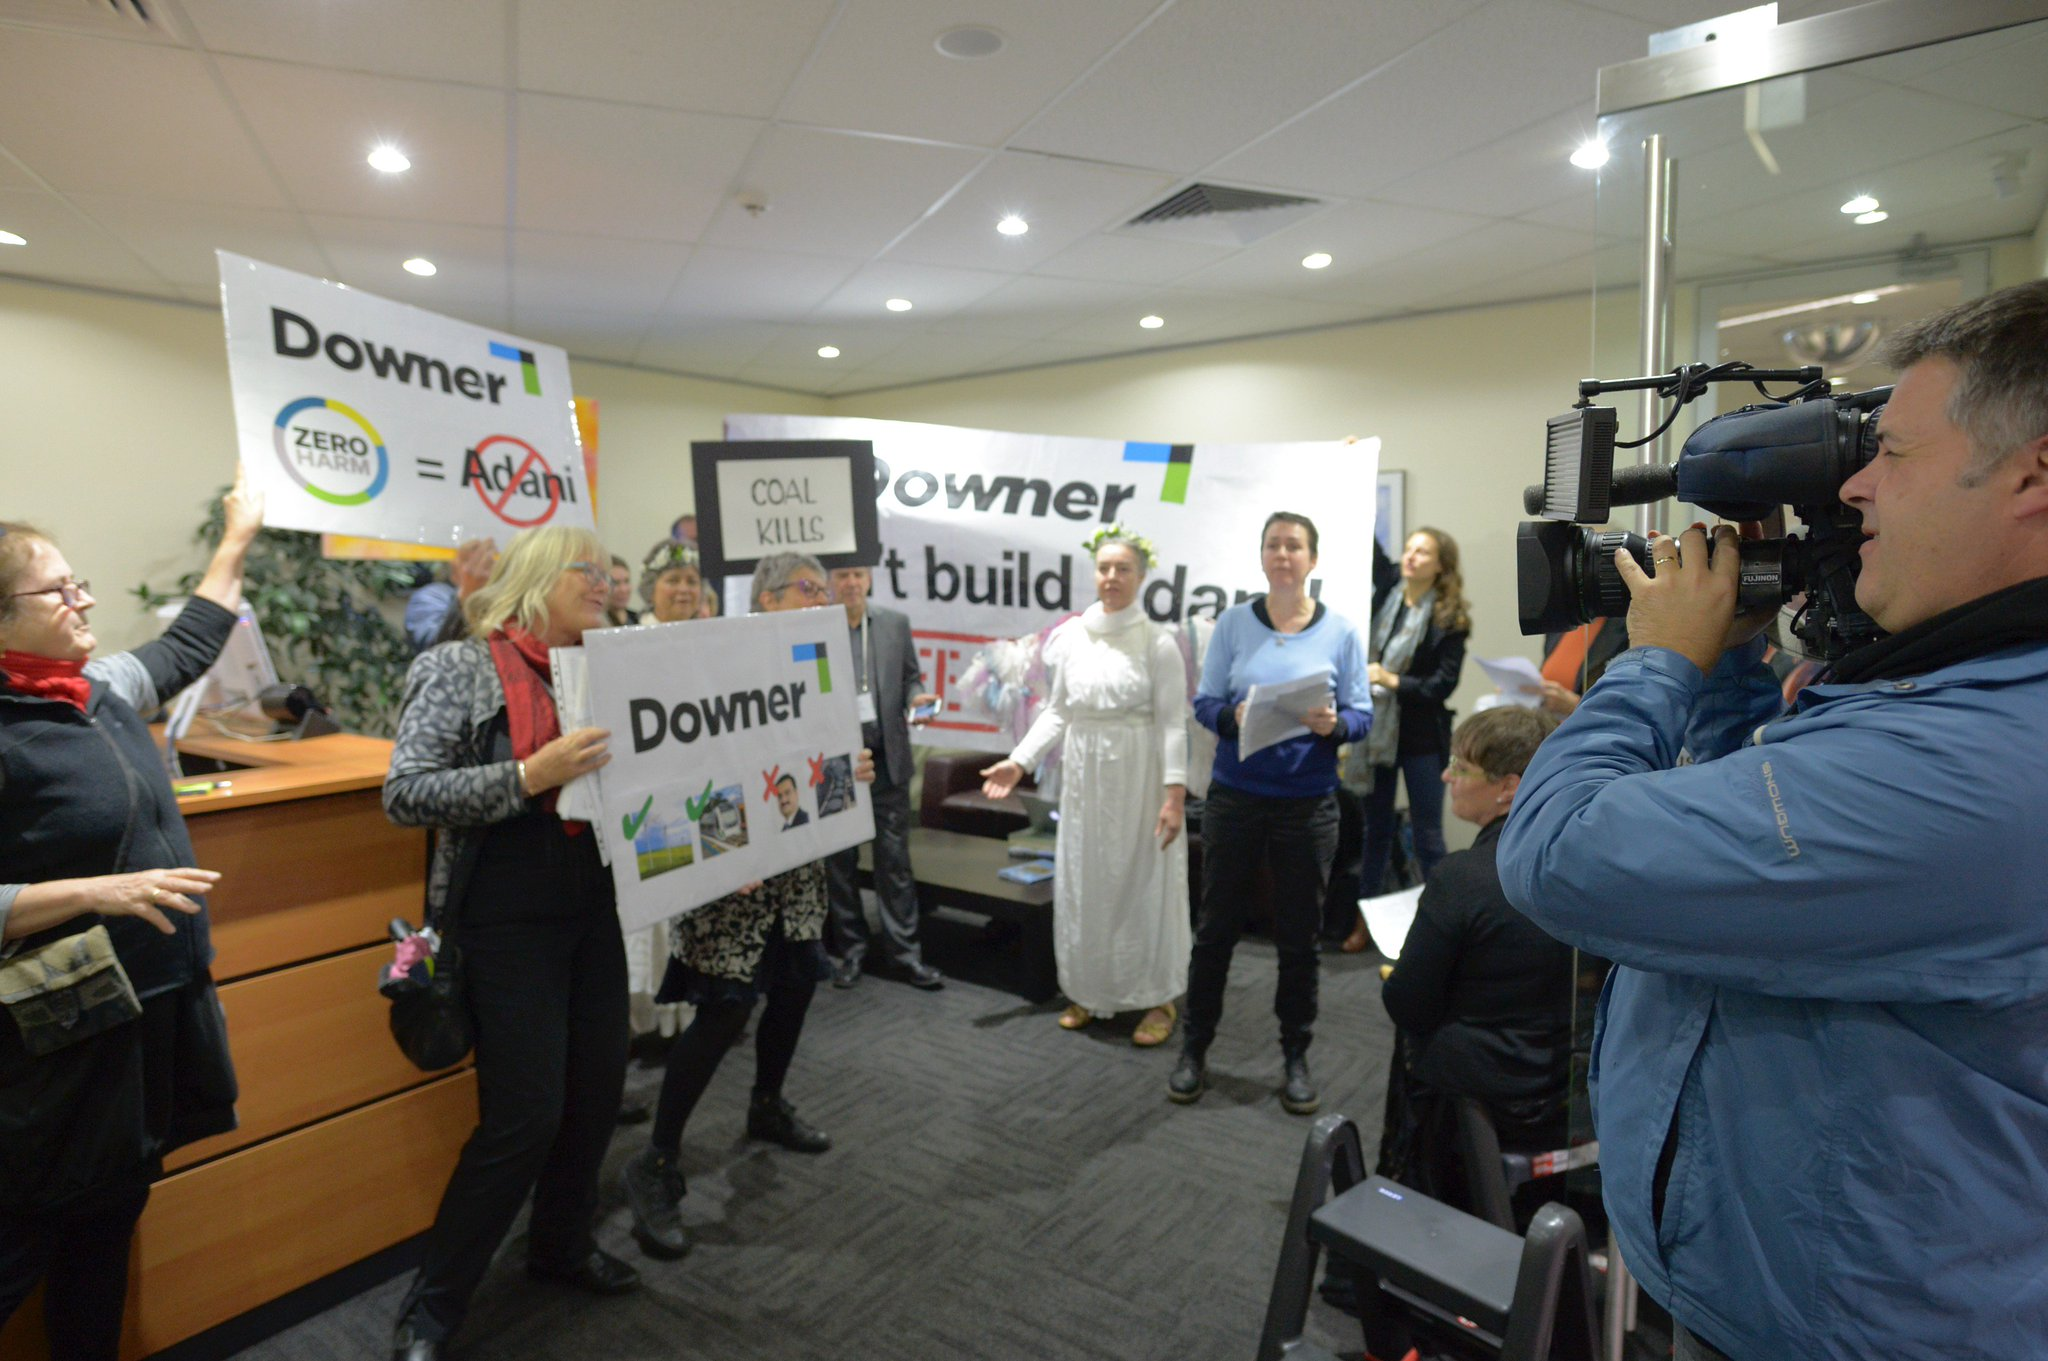 Occupation of @downergroup office Melbourne continuing. Activists locked on to the door. Downer CEO has not responded to #StopAdani request https://t.co/zSmCU1XULf